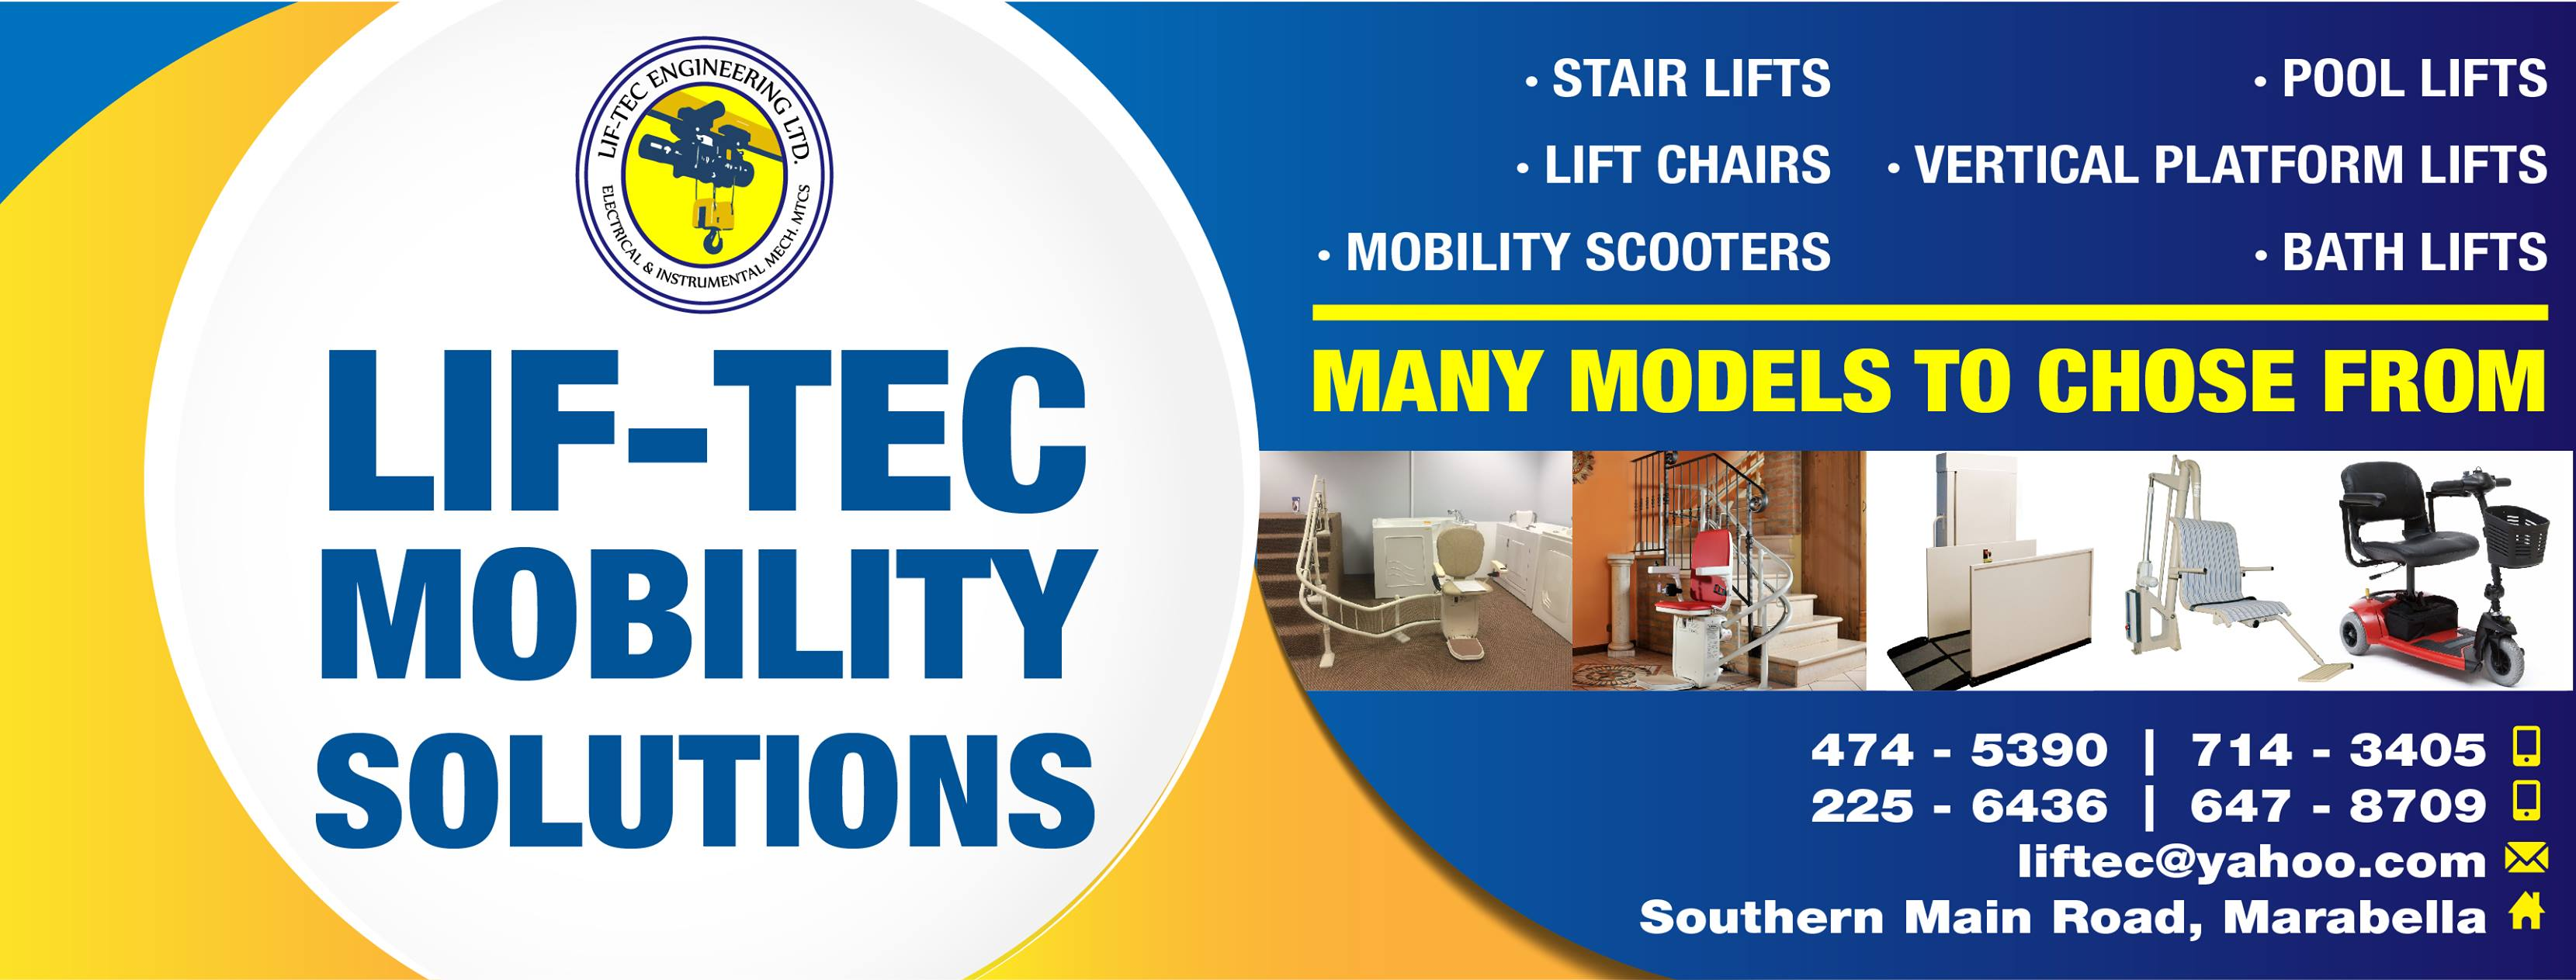 Lif Tec Engineering Tomar Wire Diagram Its Our Aim To Enhance The Lives Of Tts Ageing And Disabled Citizens By Providing Key Solutions That Will Provide Freedom Mobility Everyone